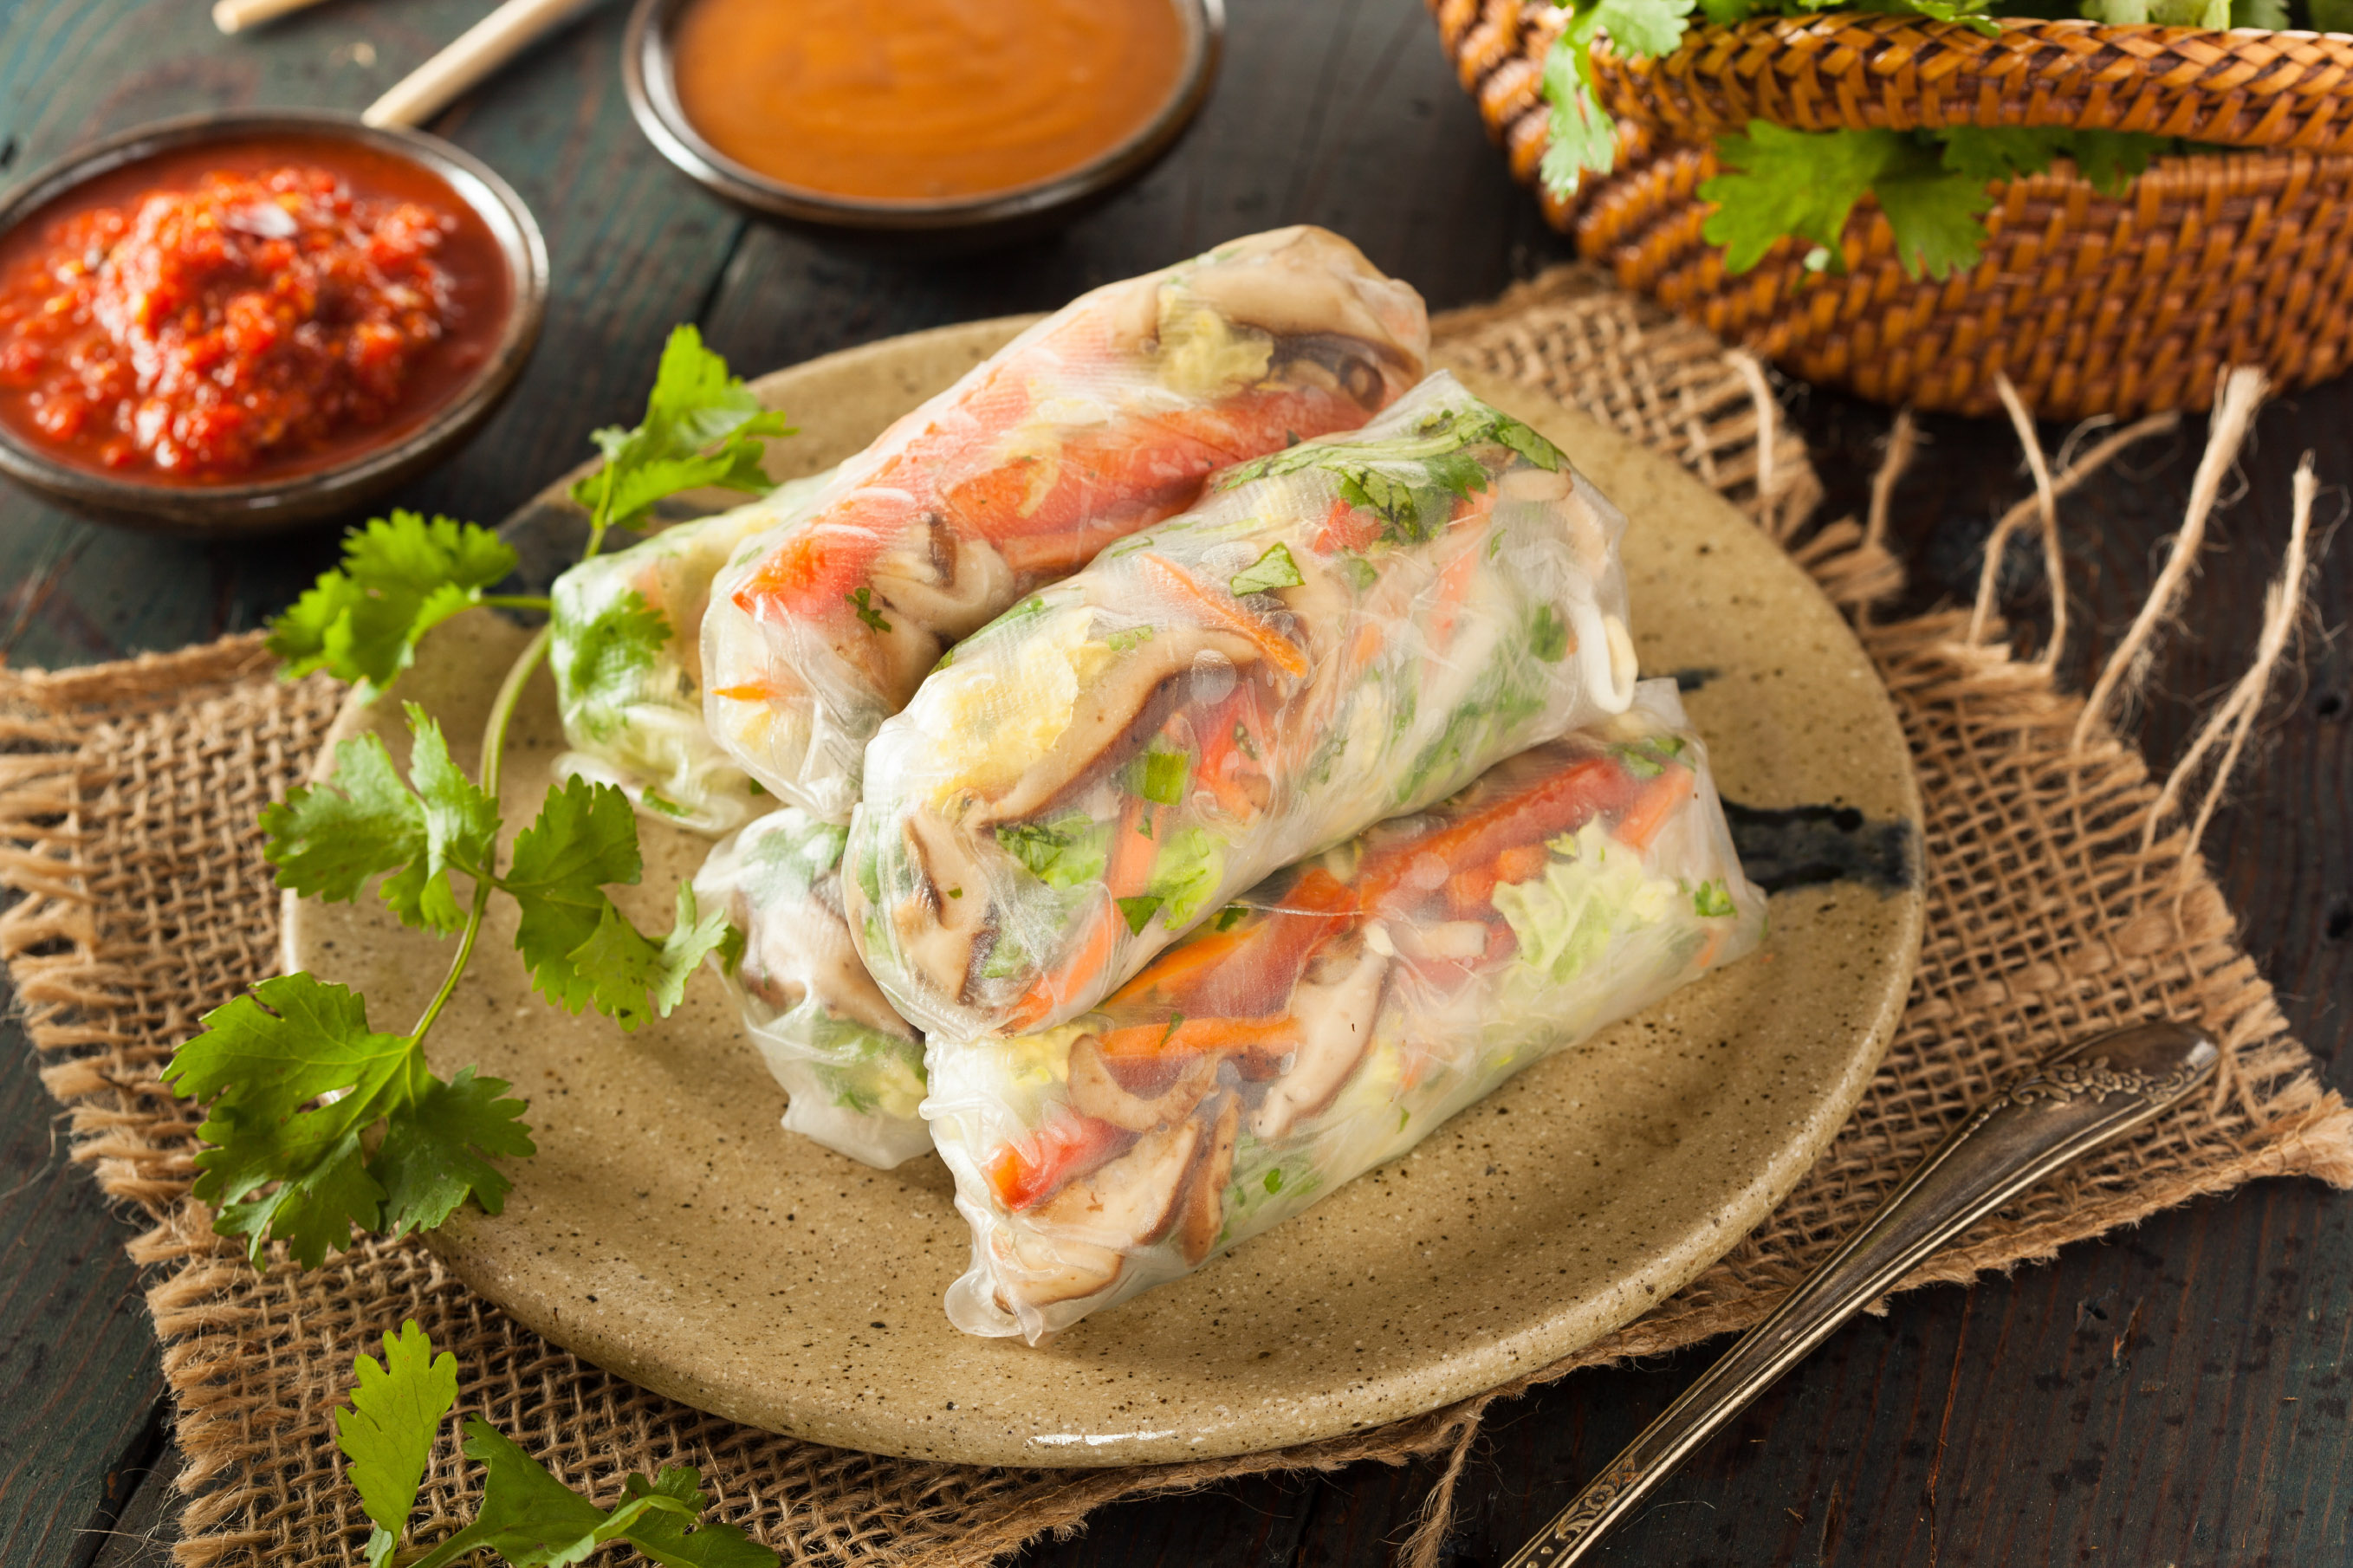 Healthy Vegetarian Spring Rolls with Cilantro Carrots and Cabbage